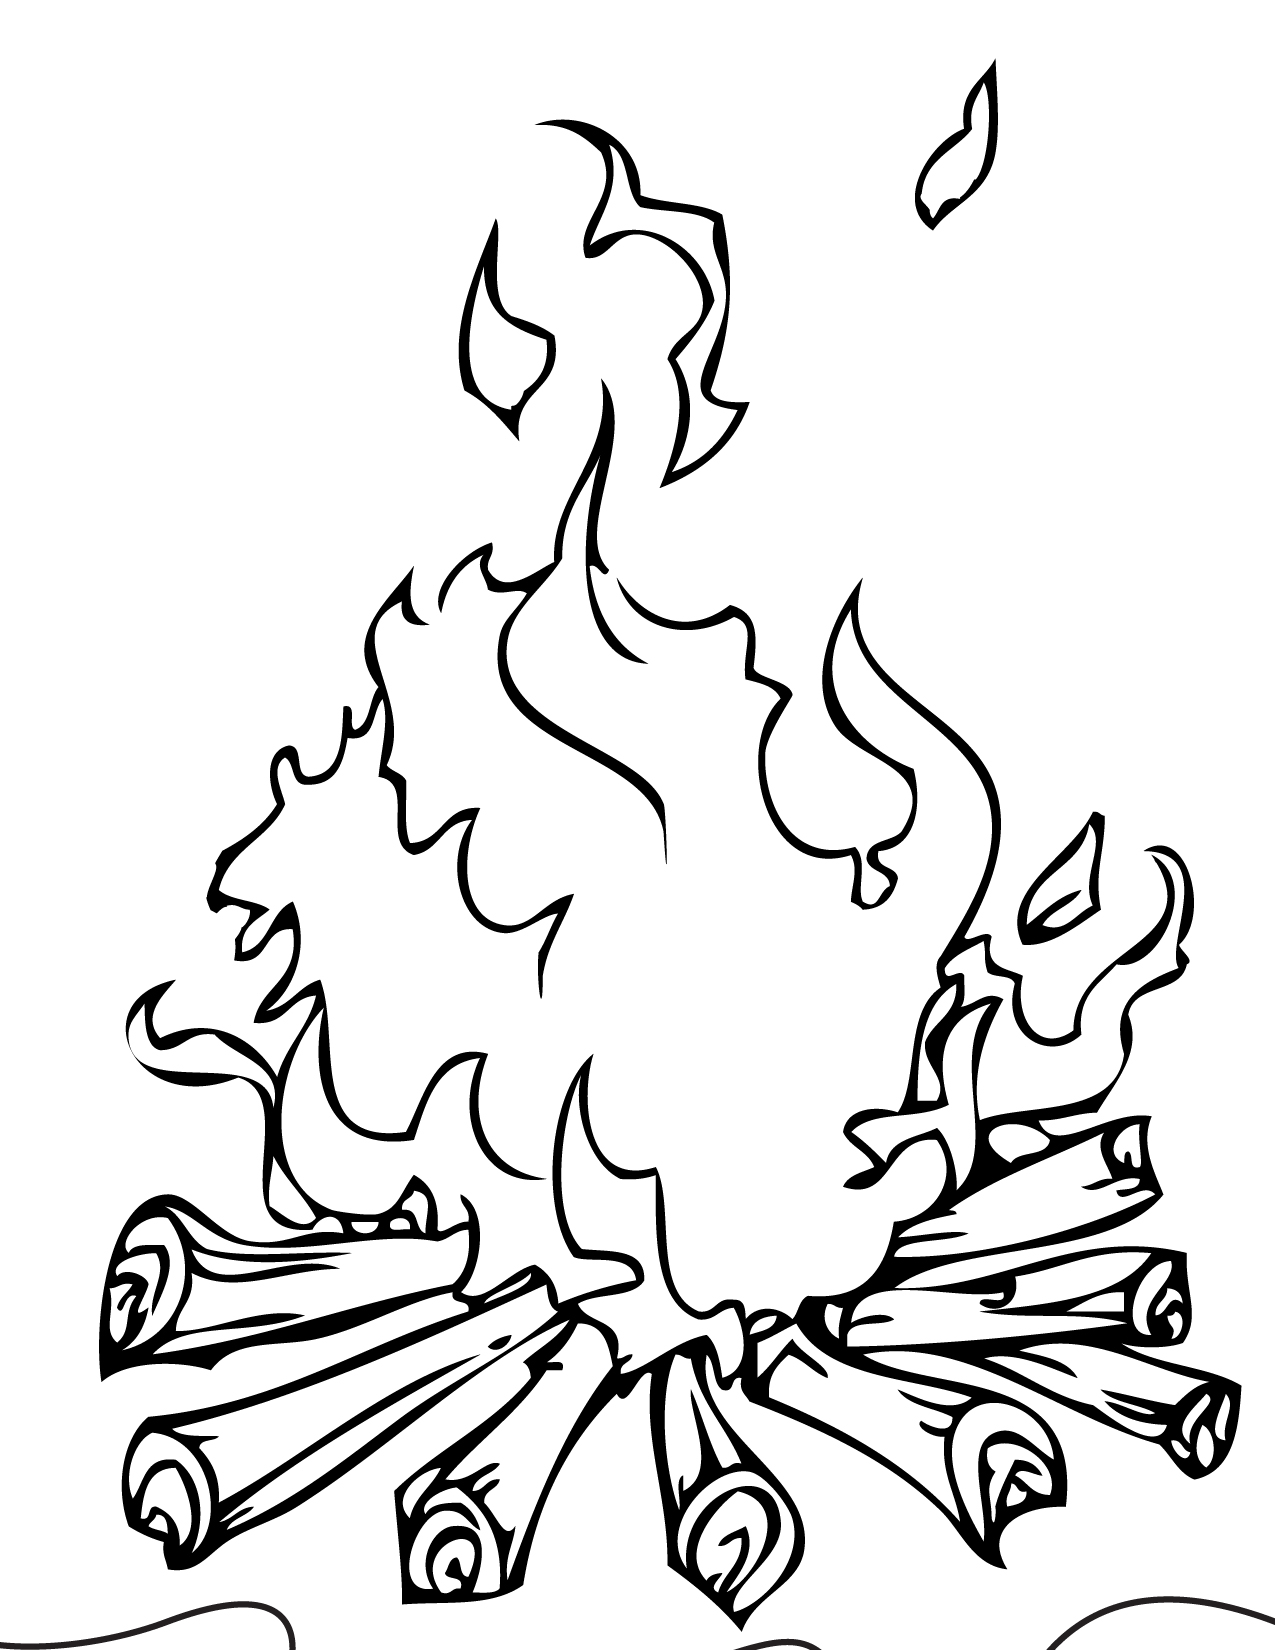 Bbq Coloring Pages Sketch Coloring Page